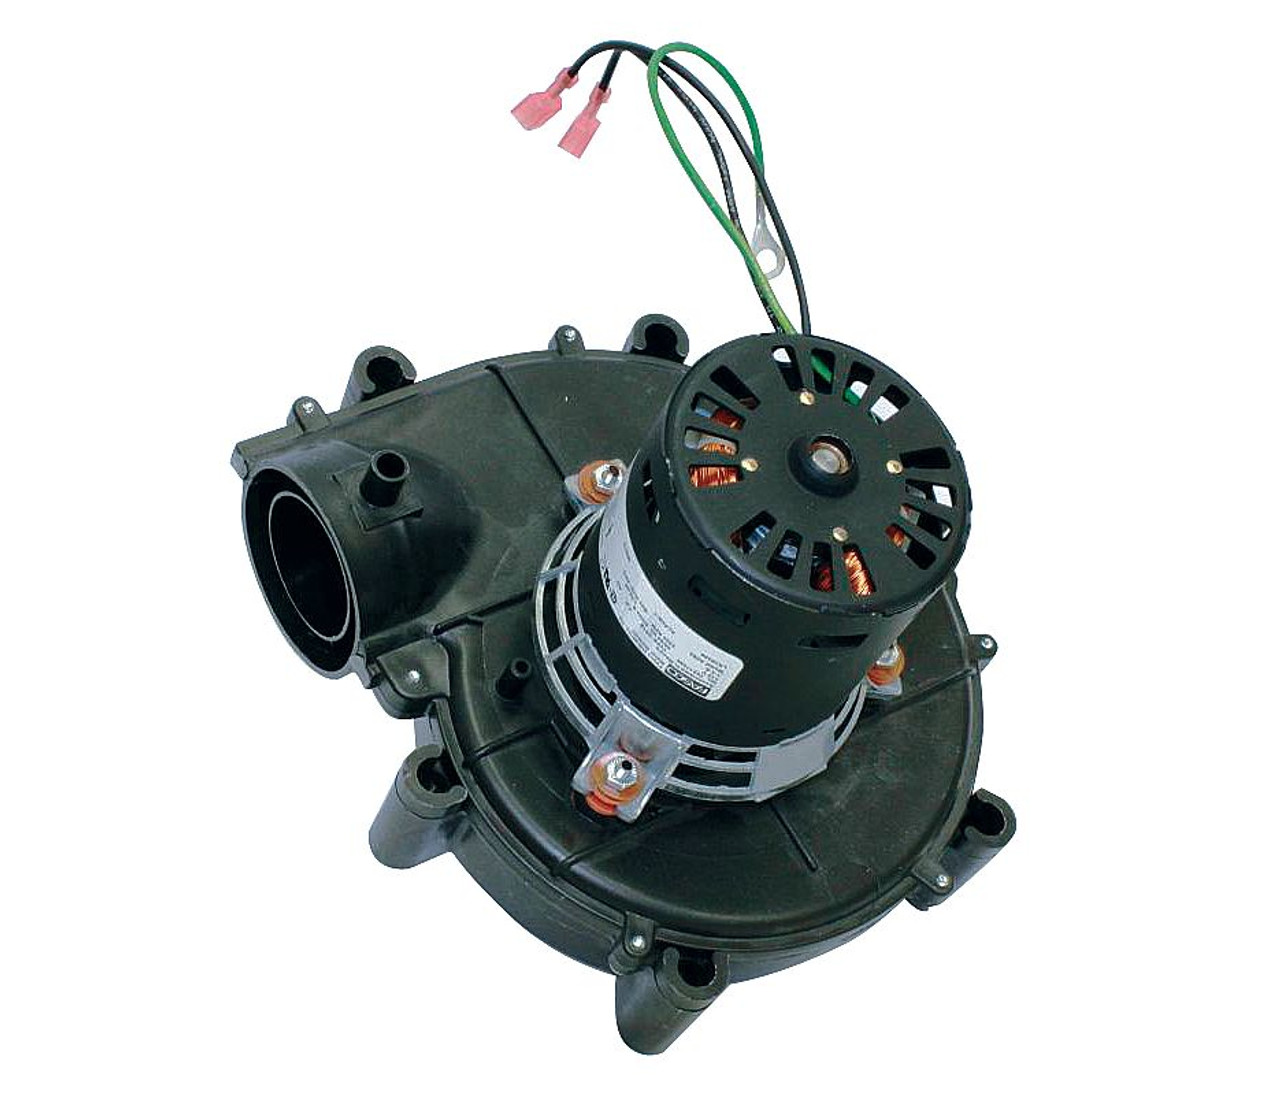 Coleman York Furnace Draft Inducer Blower 115 Volts Fasco # A088 for sale online